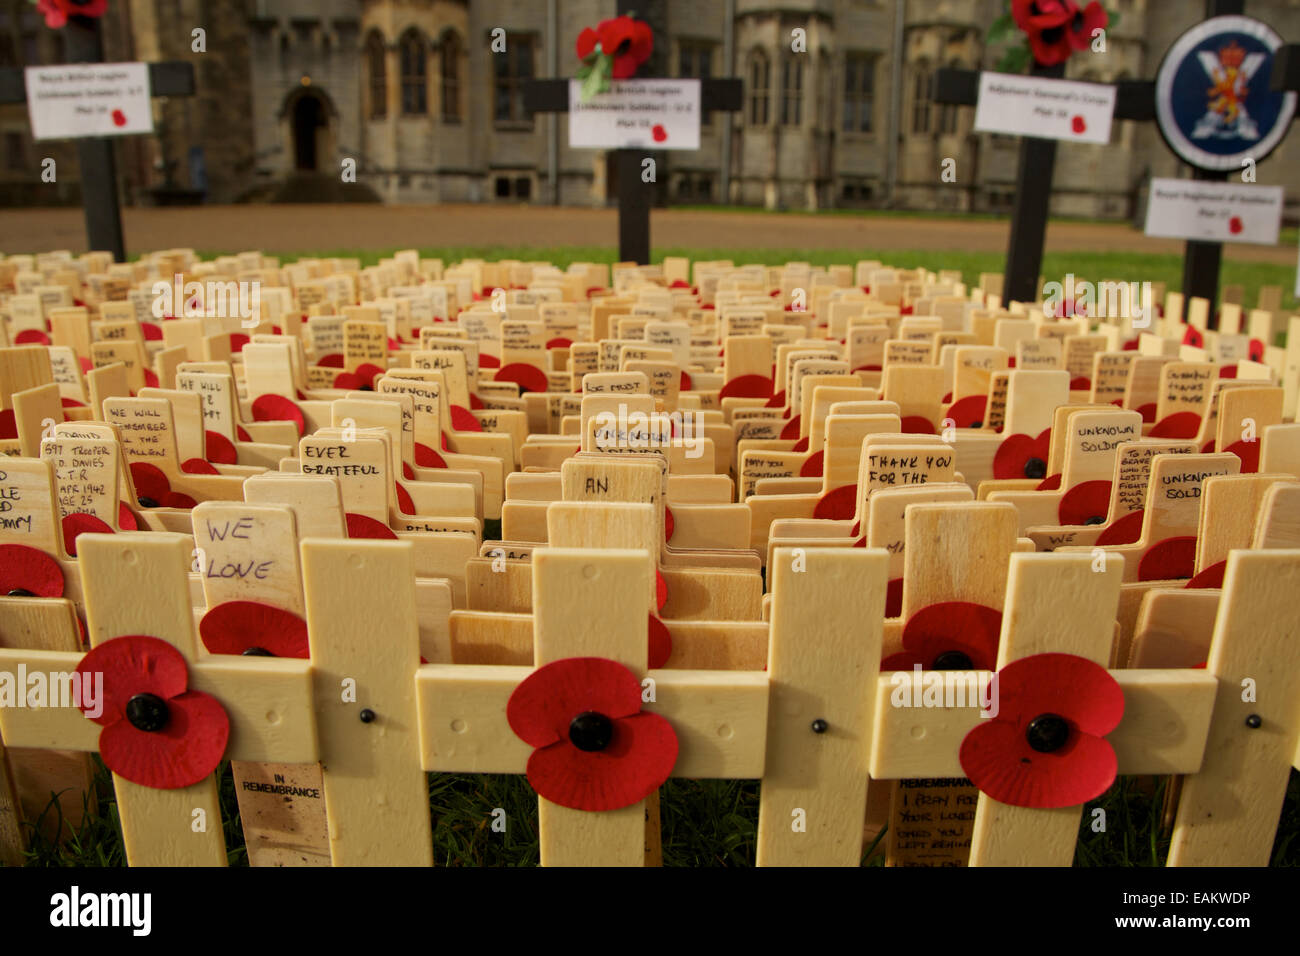 Wooden memorial crosses and Remembrance poppies adorn the grounds of Cardiff Castle prior to Remembrance Sunday. - Stock Image